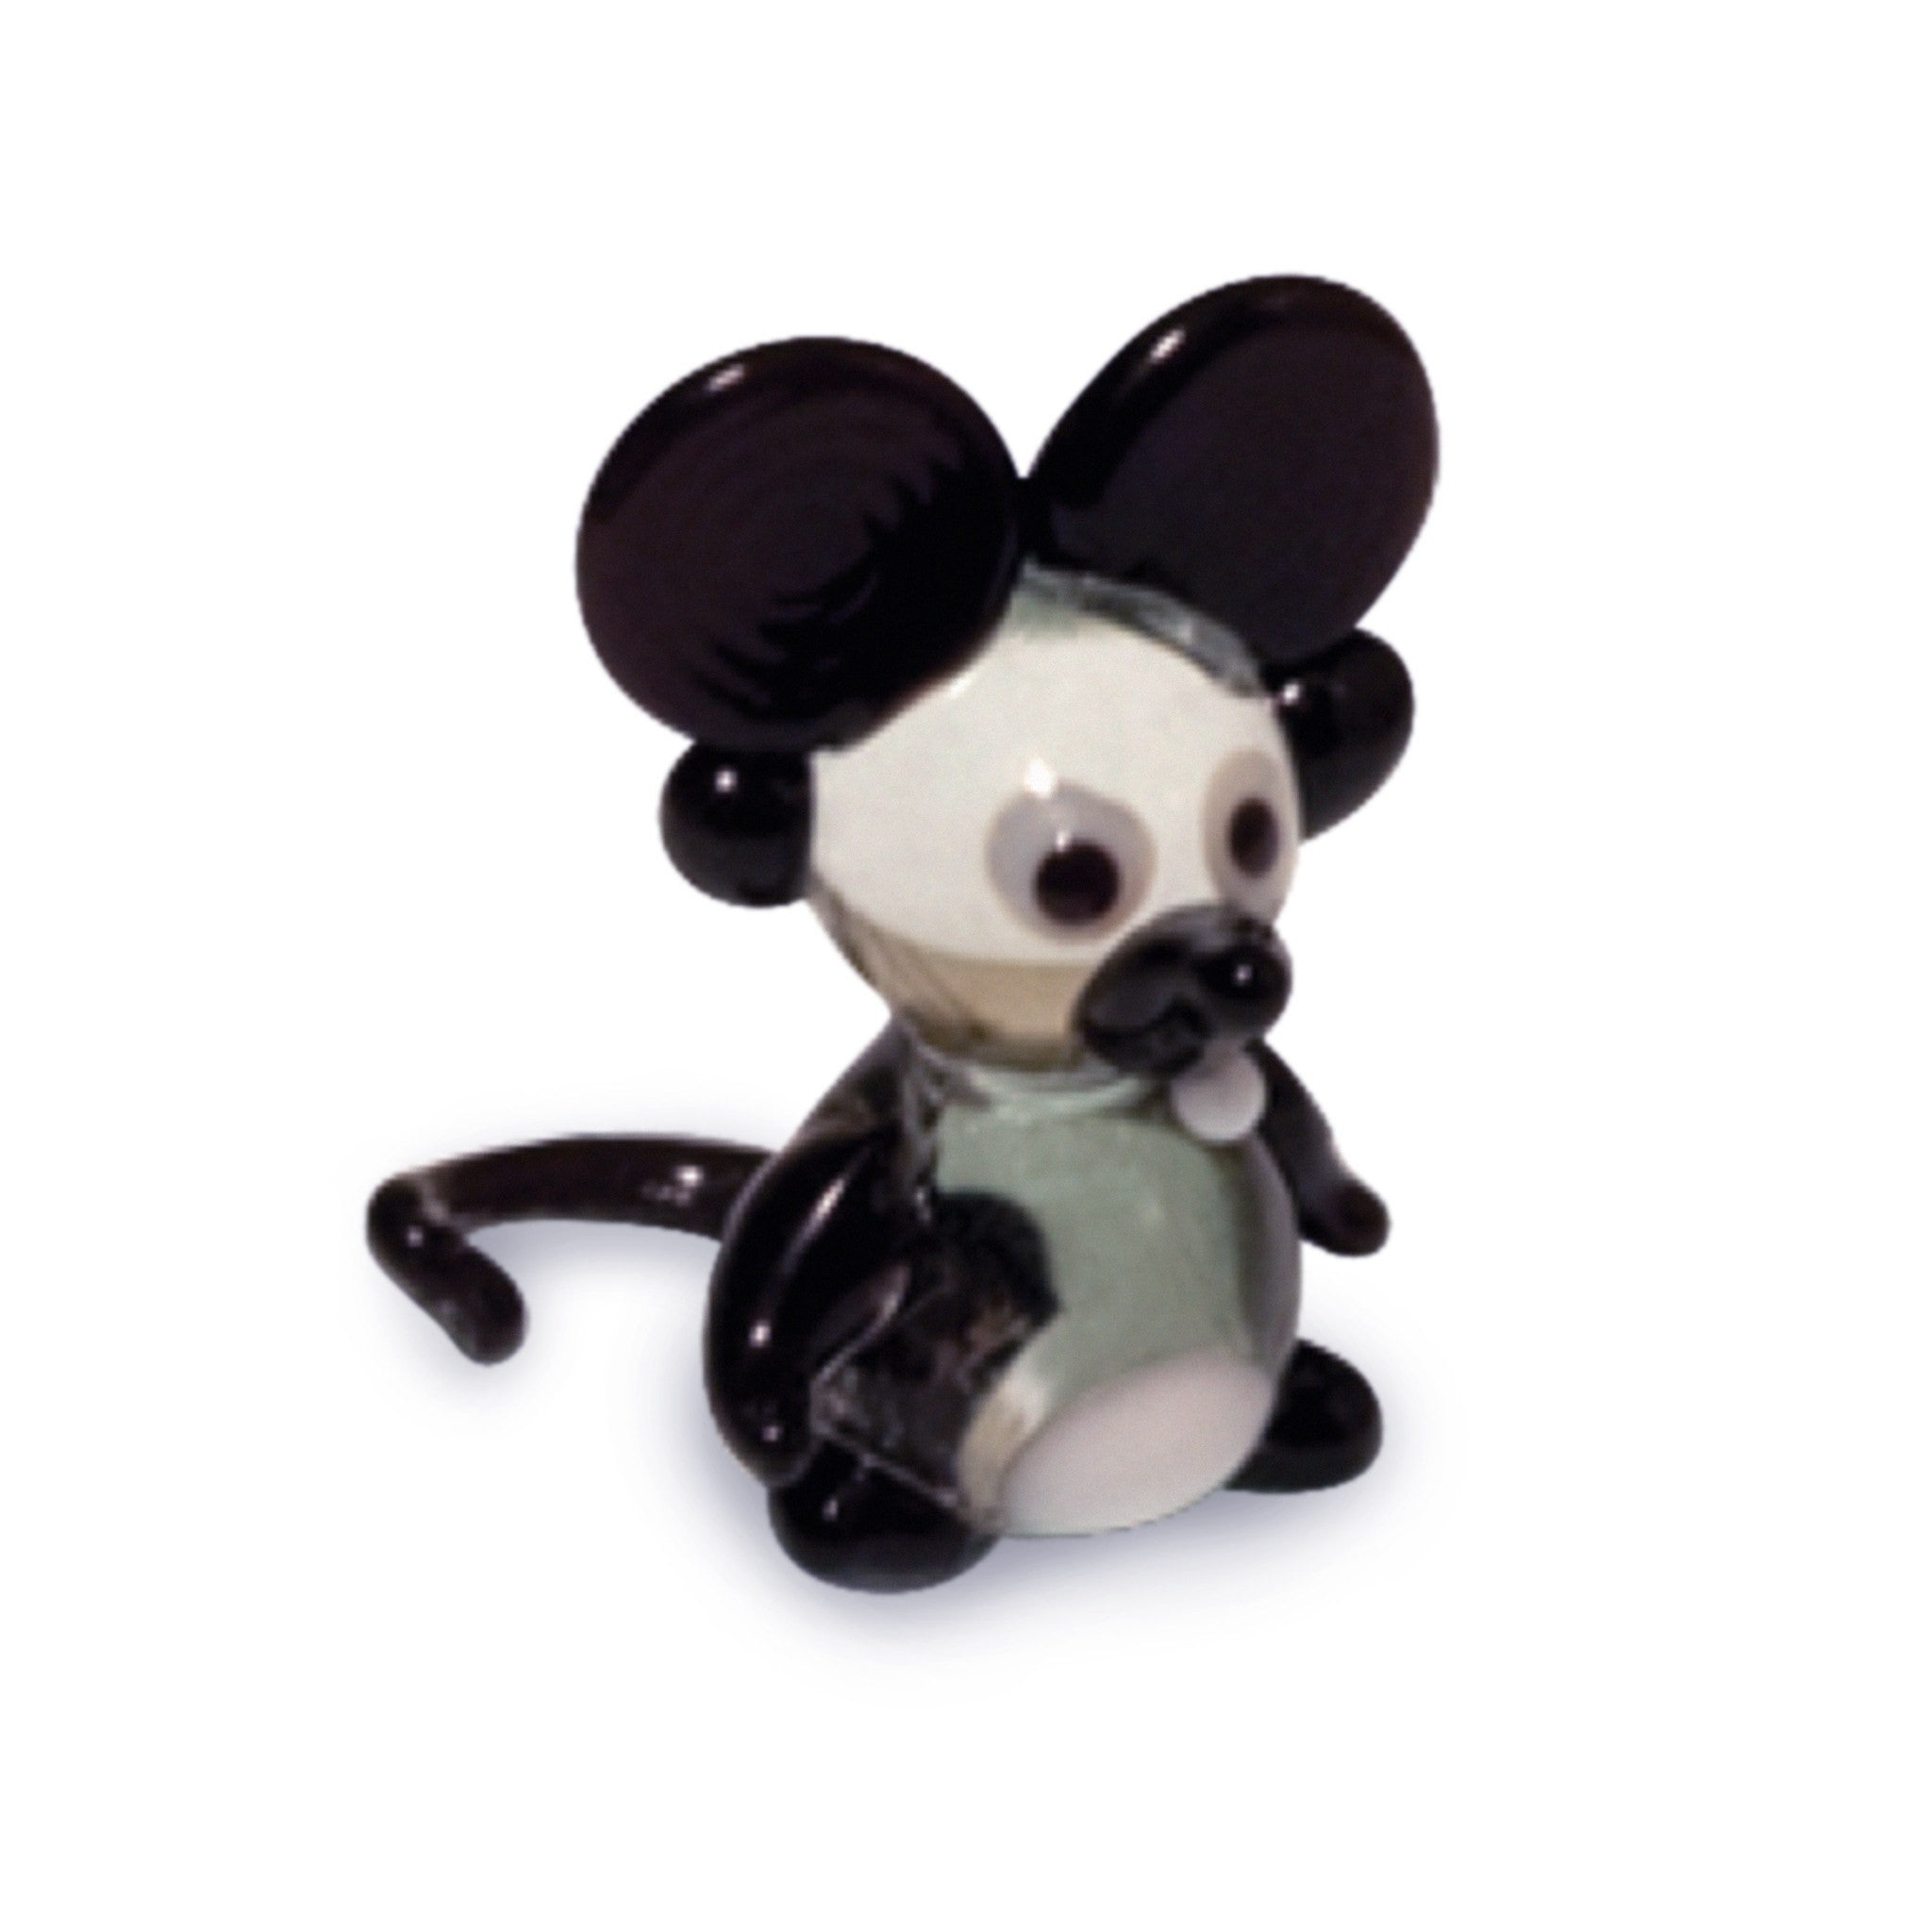 Rex the Big Ear Mouse (in Tynies Collector's Frame) Miniature glass figurines